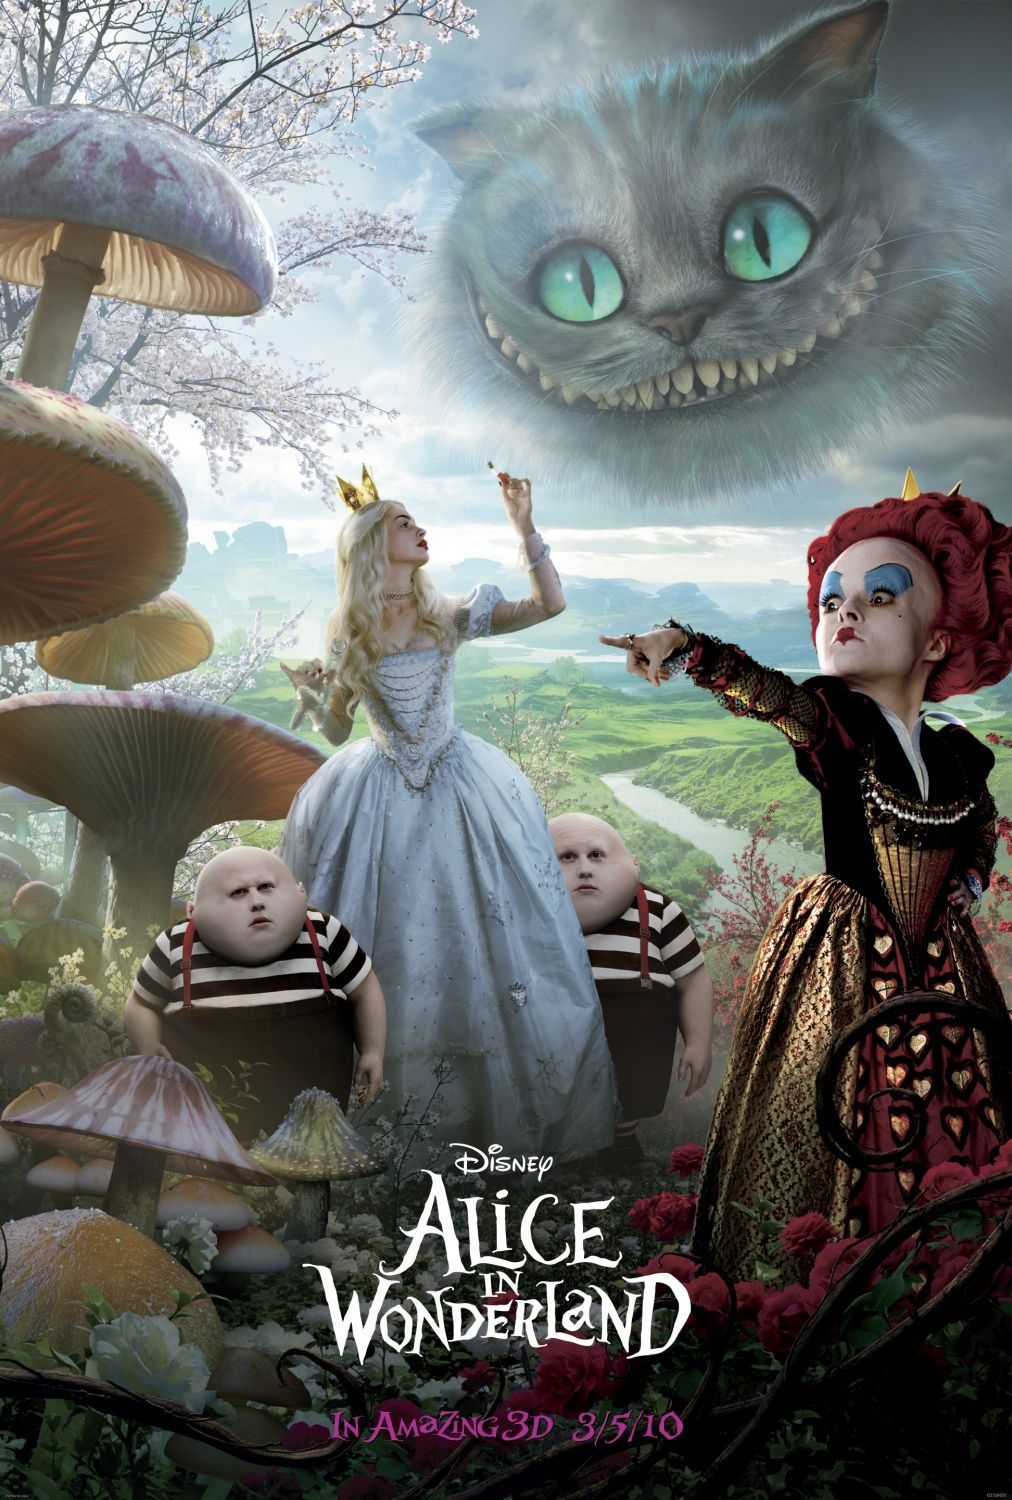 Alice in Wonderland - Red Queen and Cheshire Cat